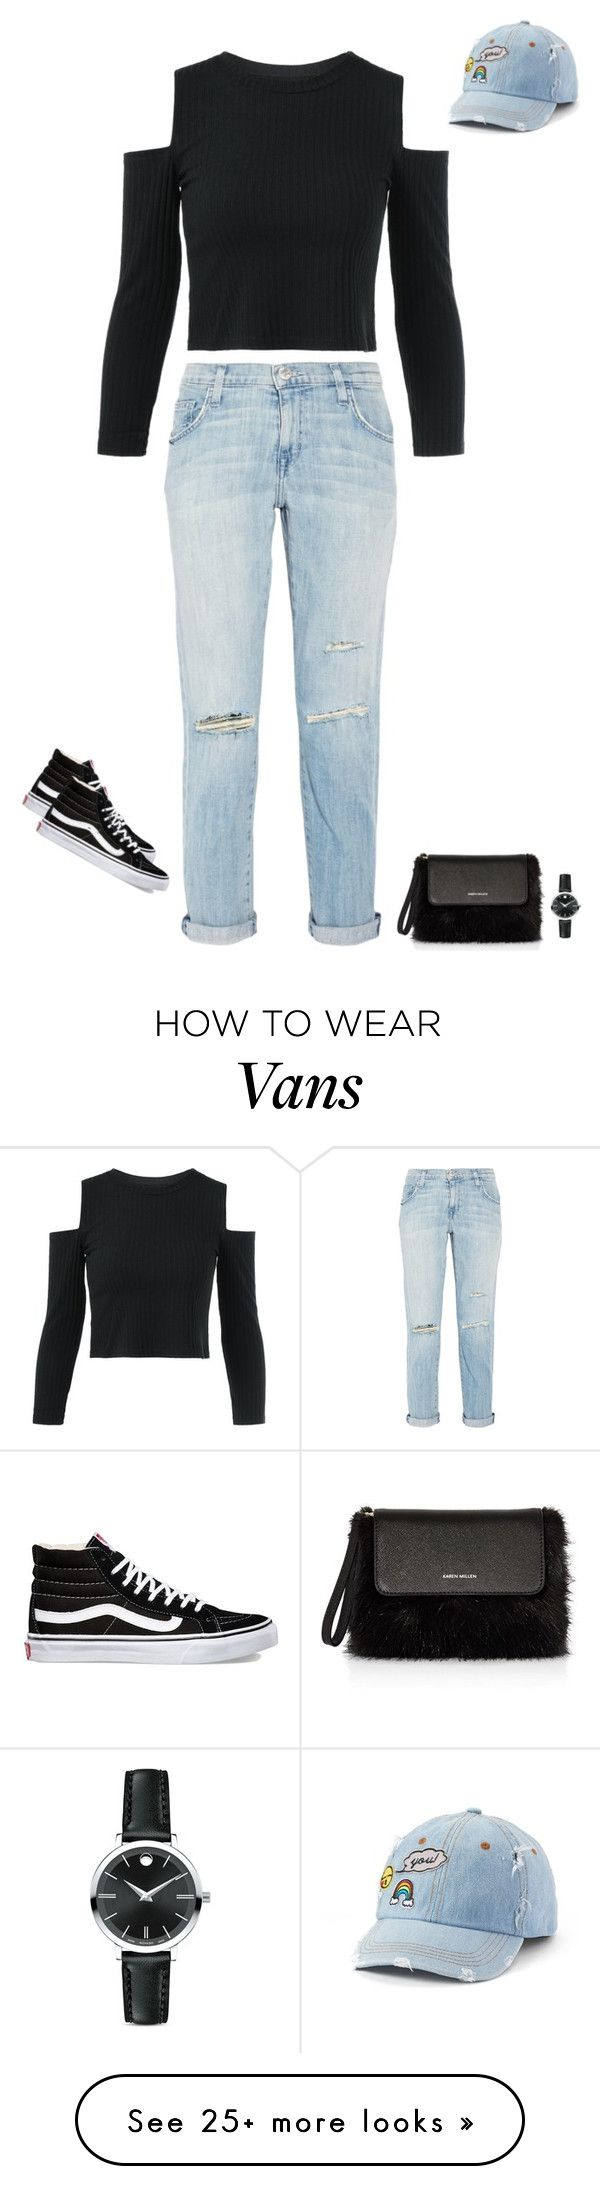 """Cali"" by alenanguyen on Polyvore featuring Current/Elliott, SO, Vans, Karen Millen and Movado"